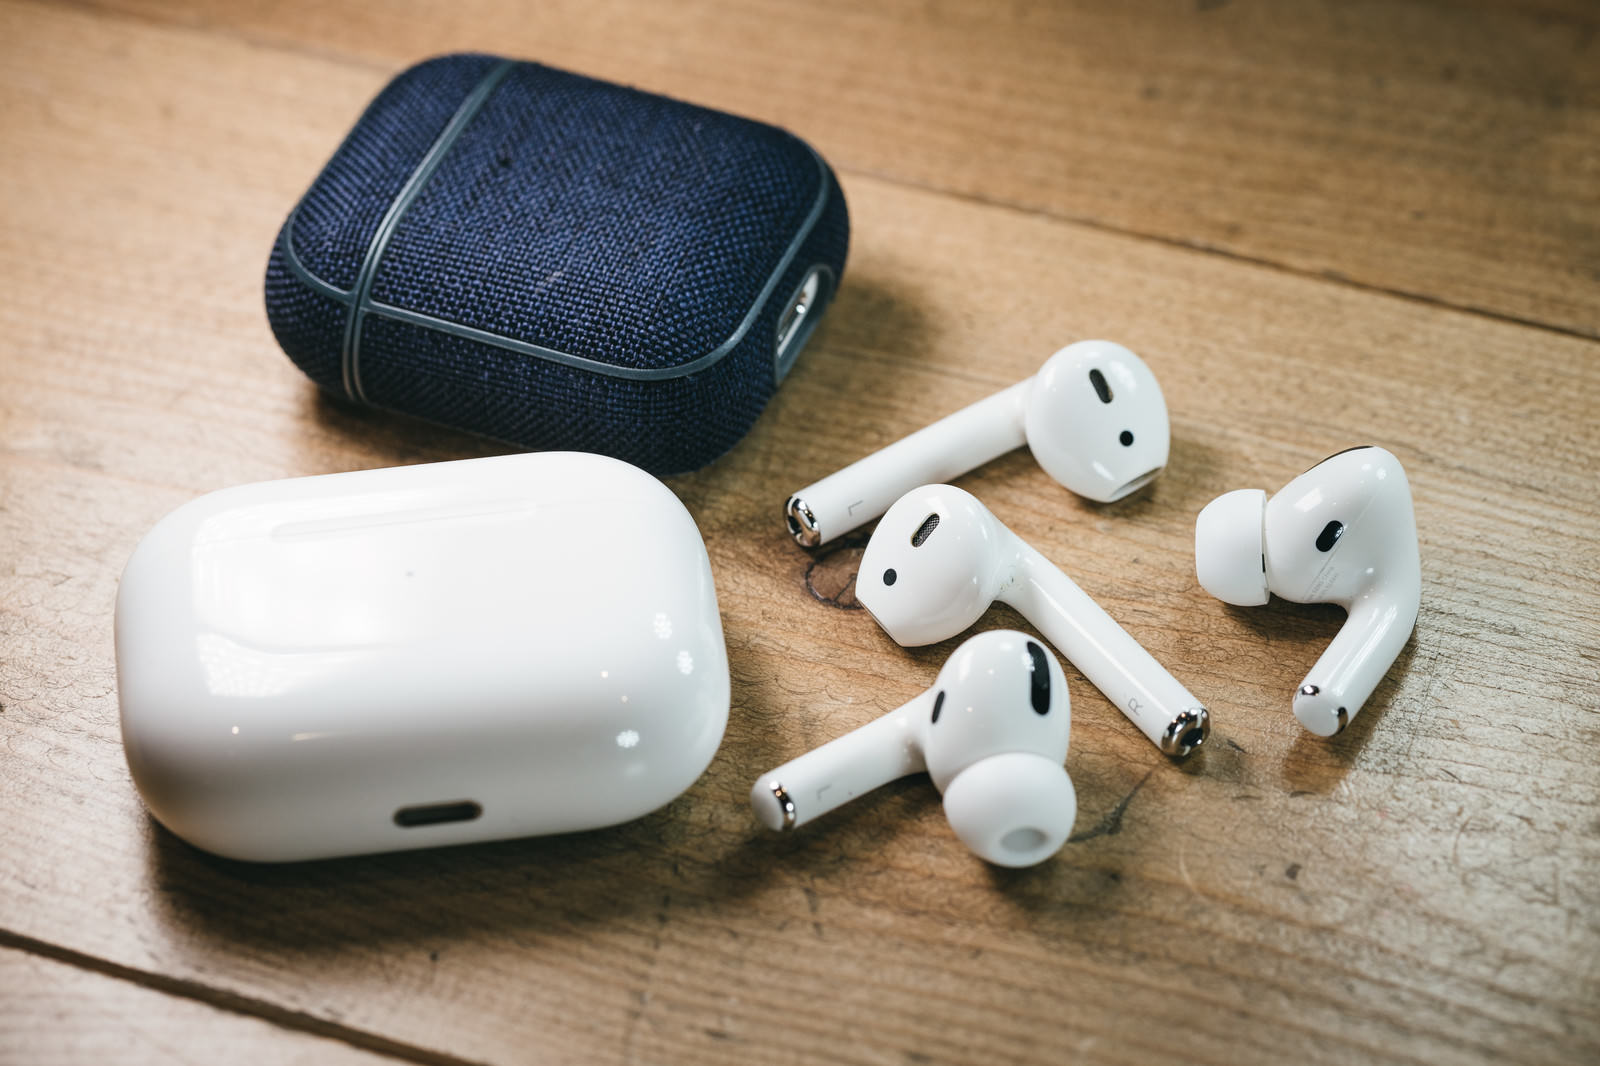 Airpods458A3004 TP V